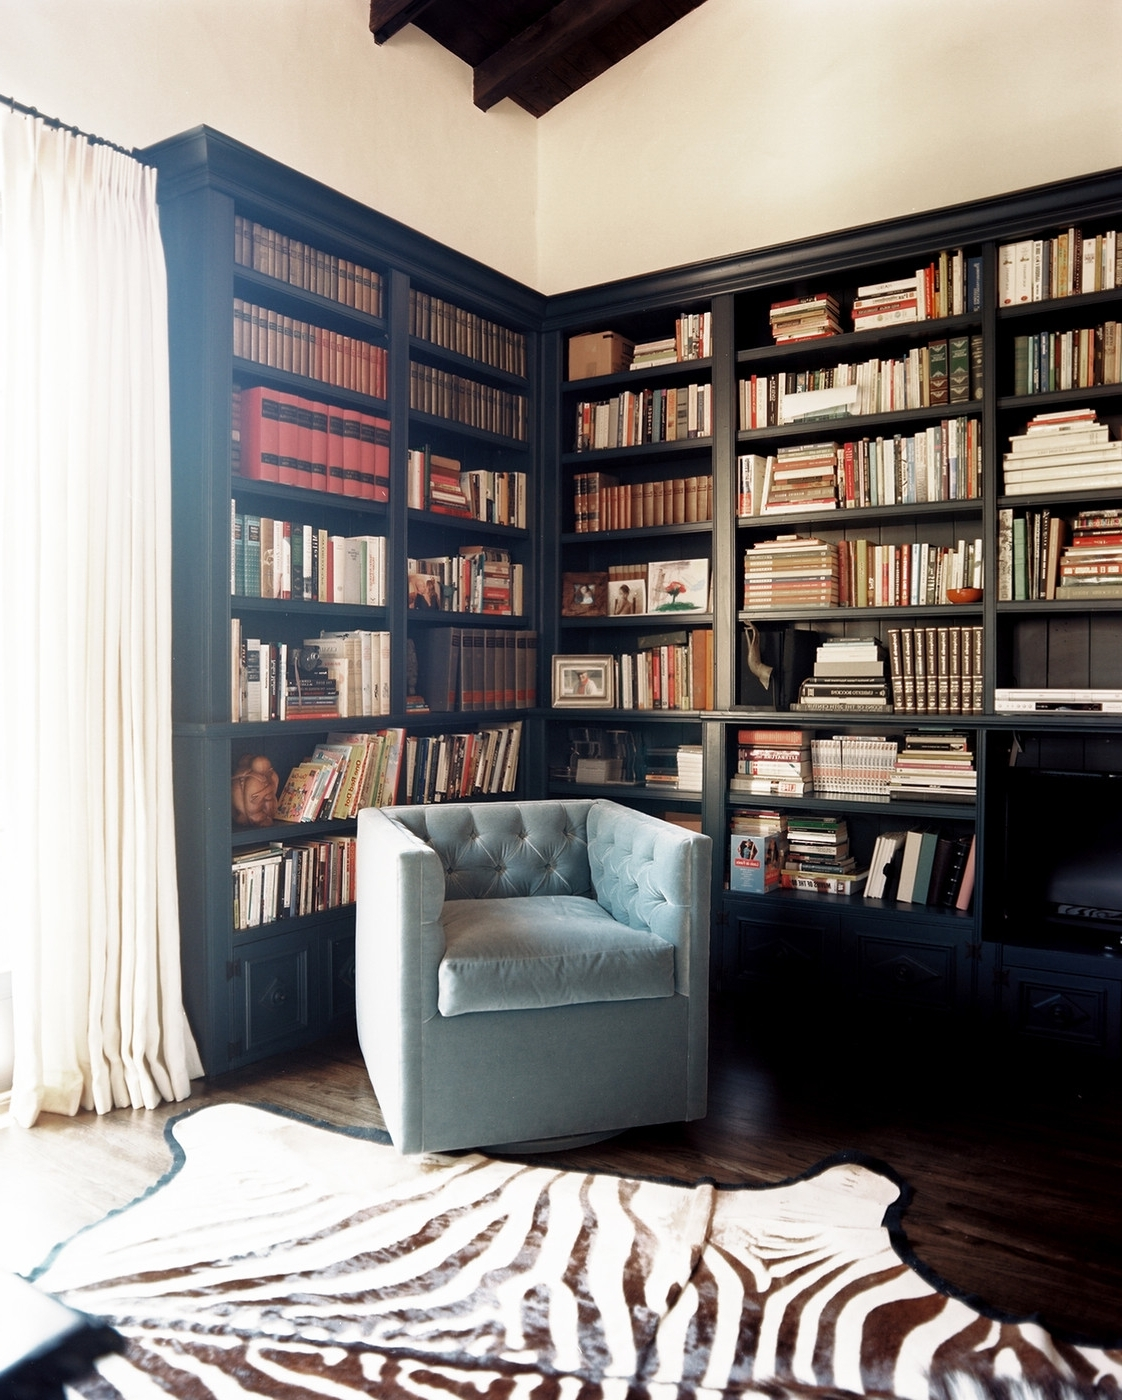 Traditional Bookshelves With Regard To Recent Built In Bookcases Photos, Design, Ideas, Remodel, And Decor – Lonny (View 10 of 15)